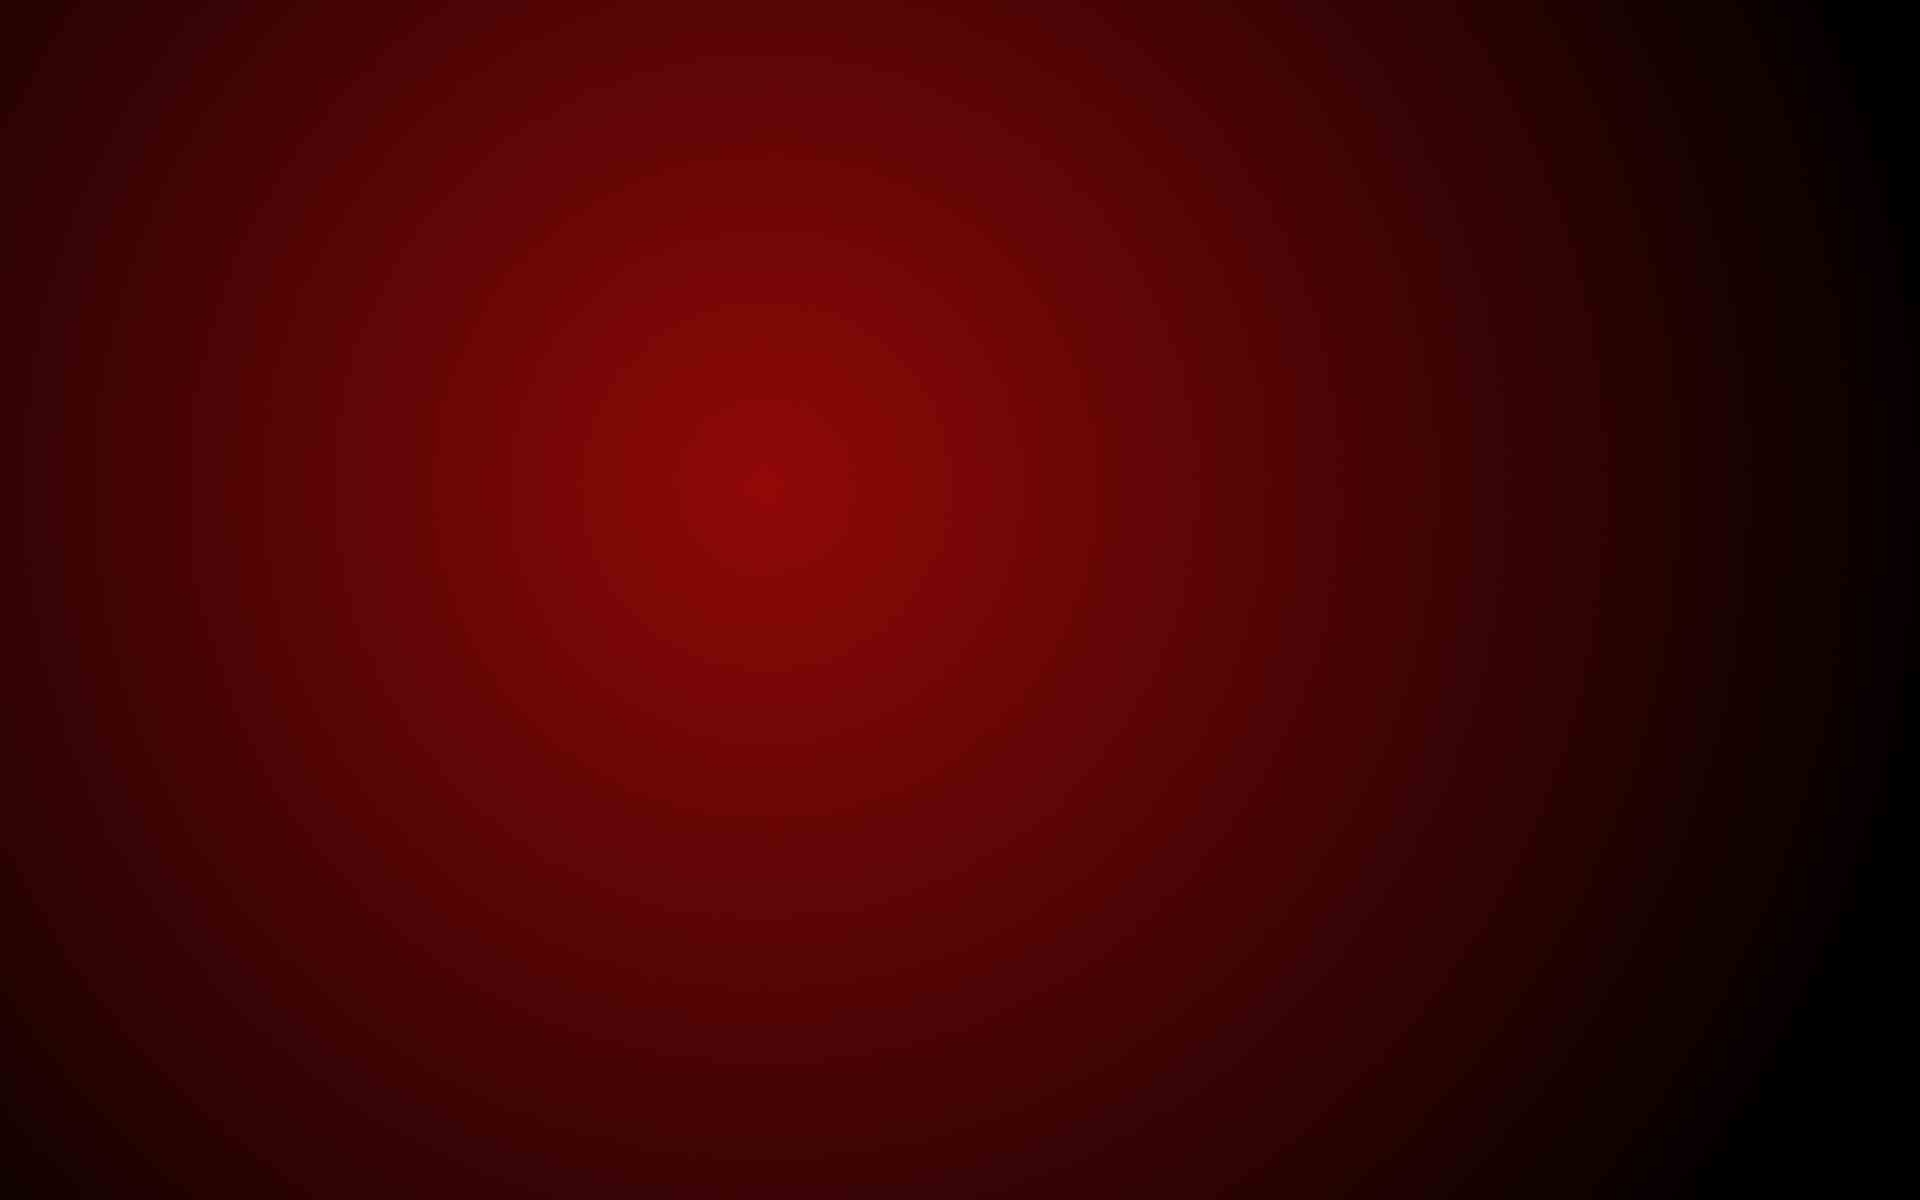 Simple Plain Red Background